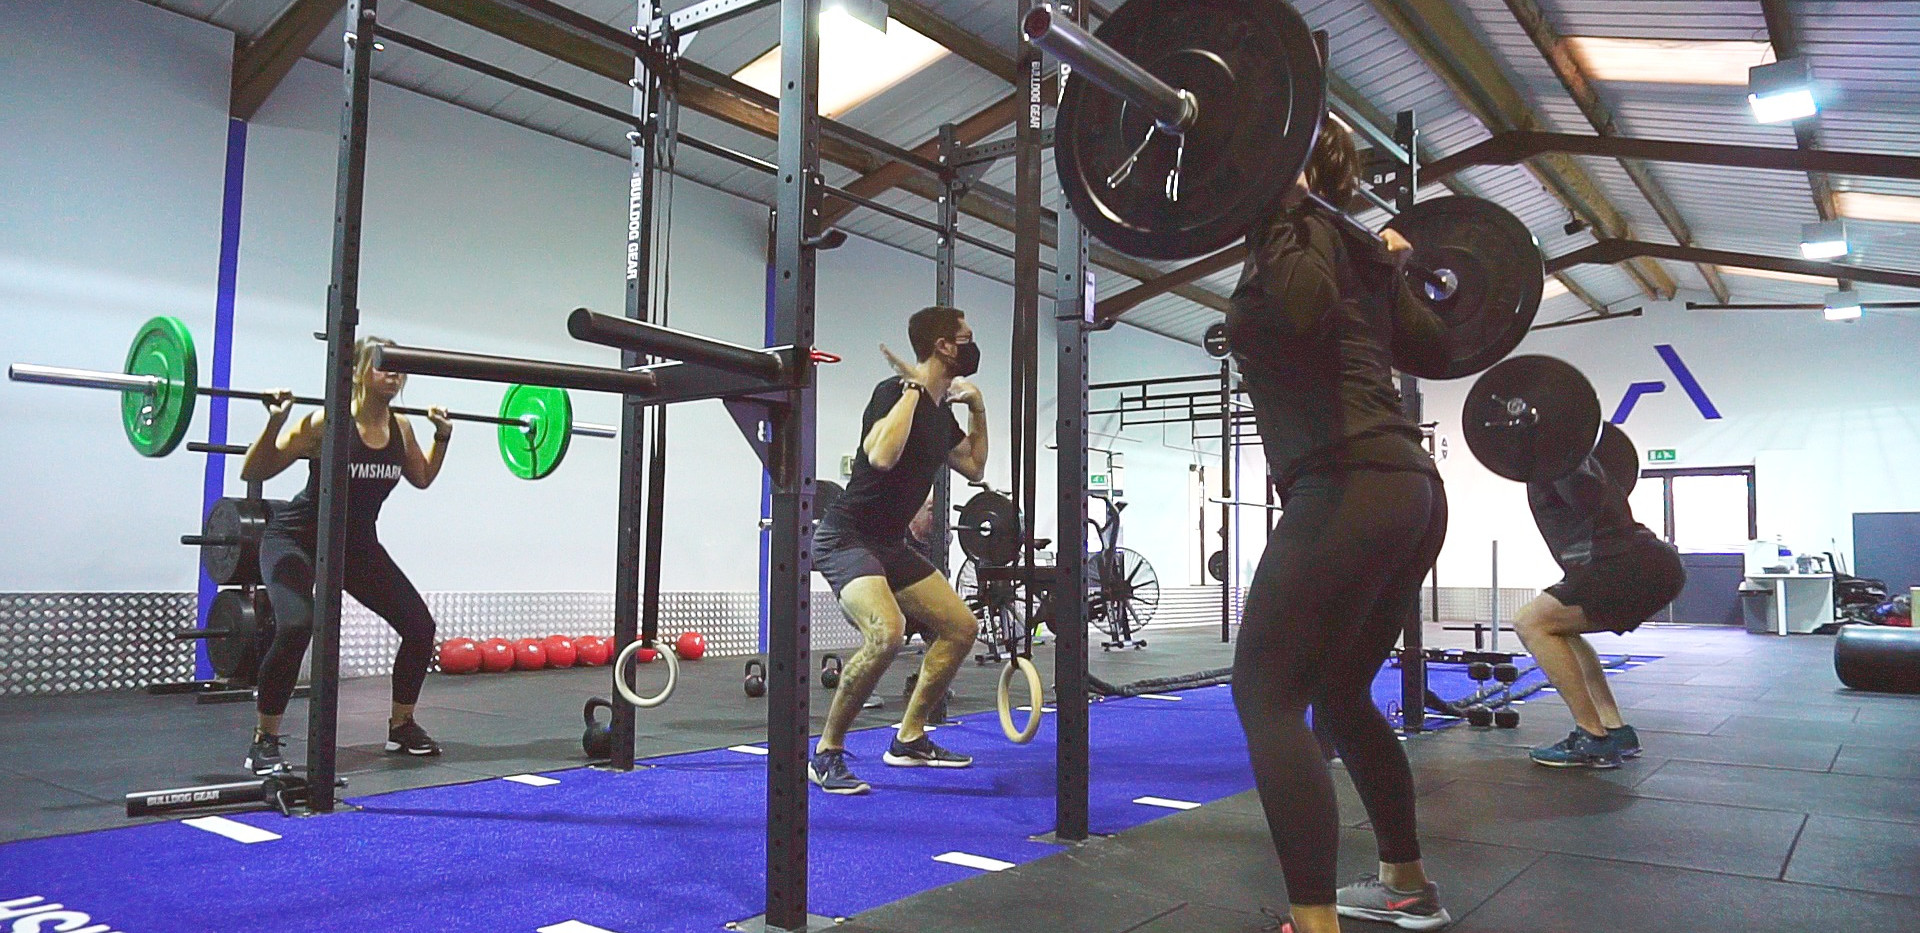 Affordable and challenging Group Fitness